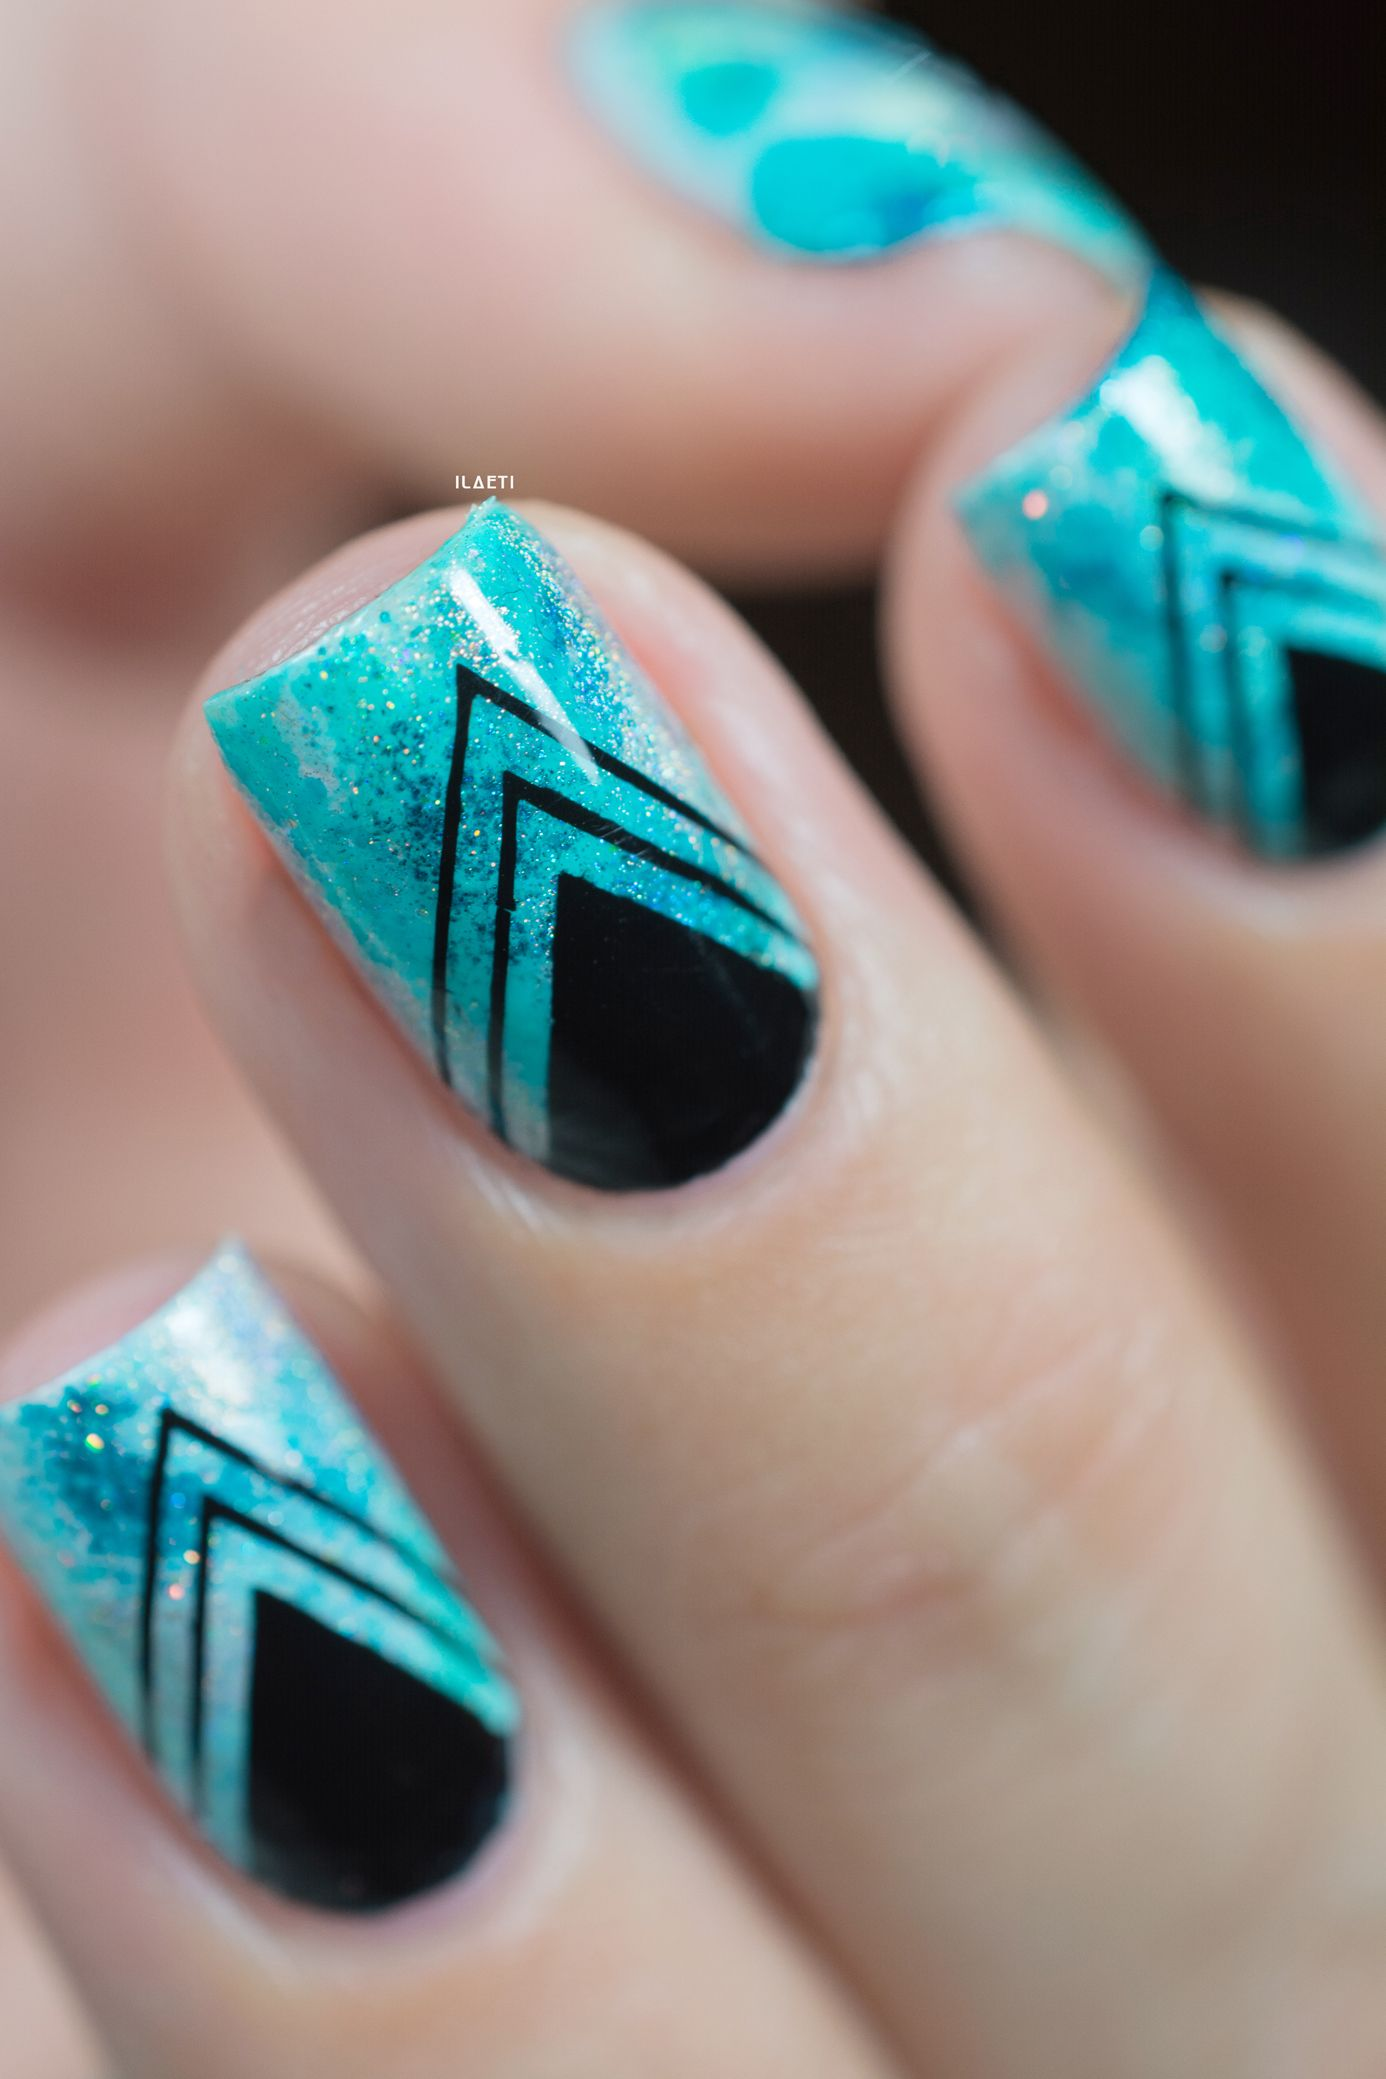 Nail art_teal sponging black stamping_05 | Am I Blue | Pinterest ...